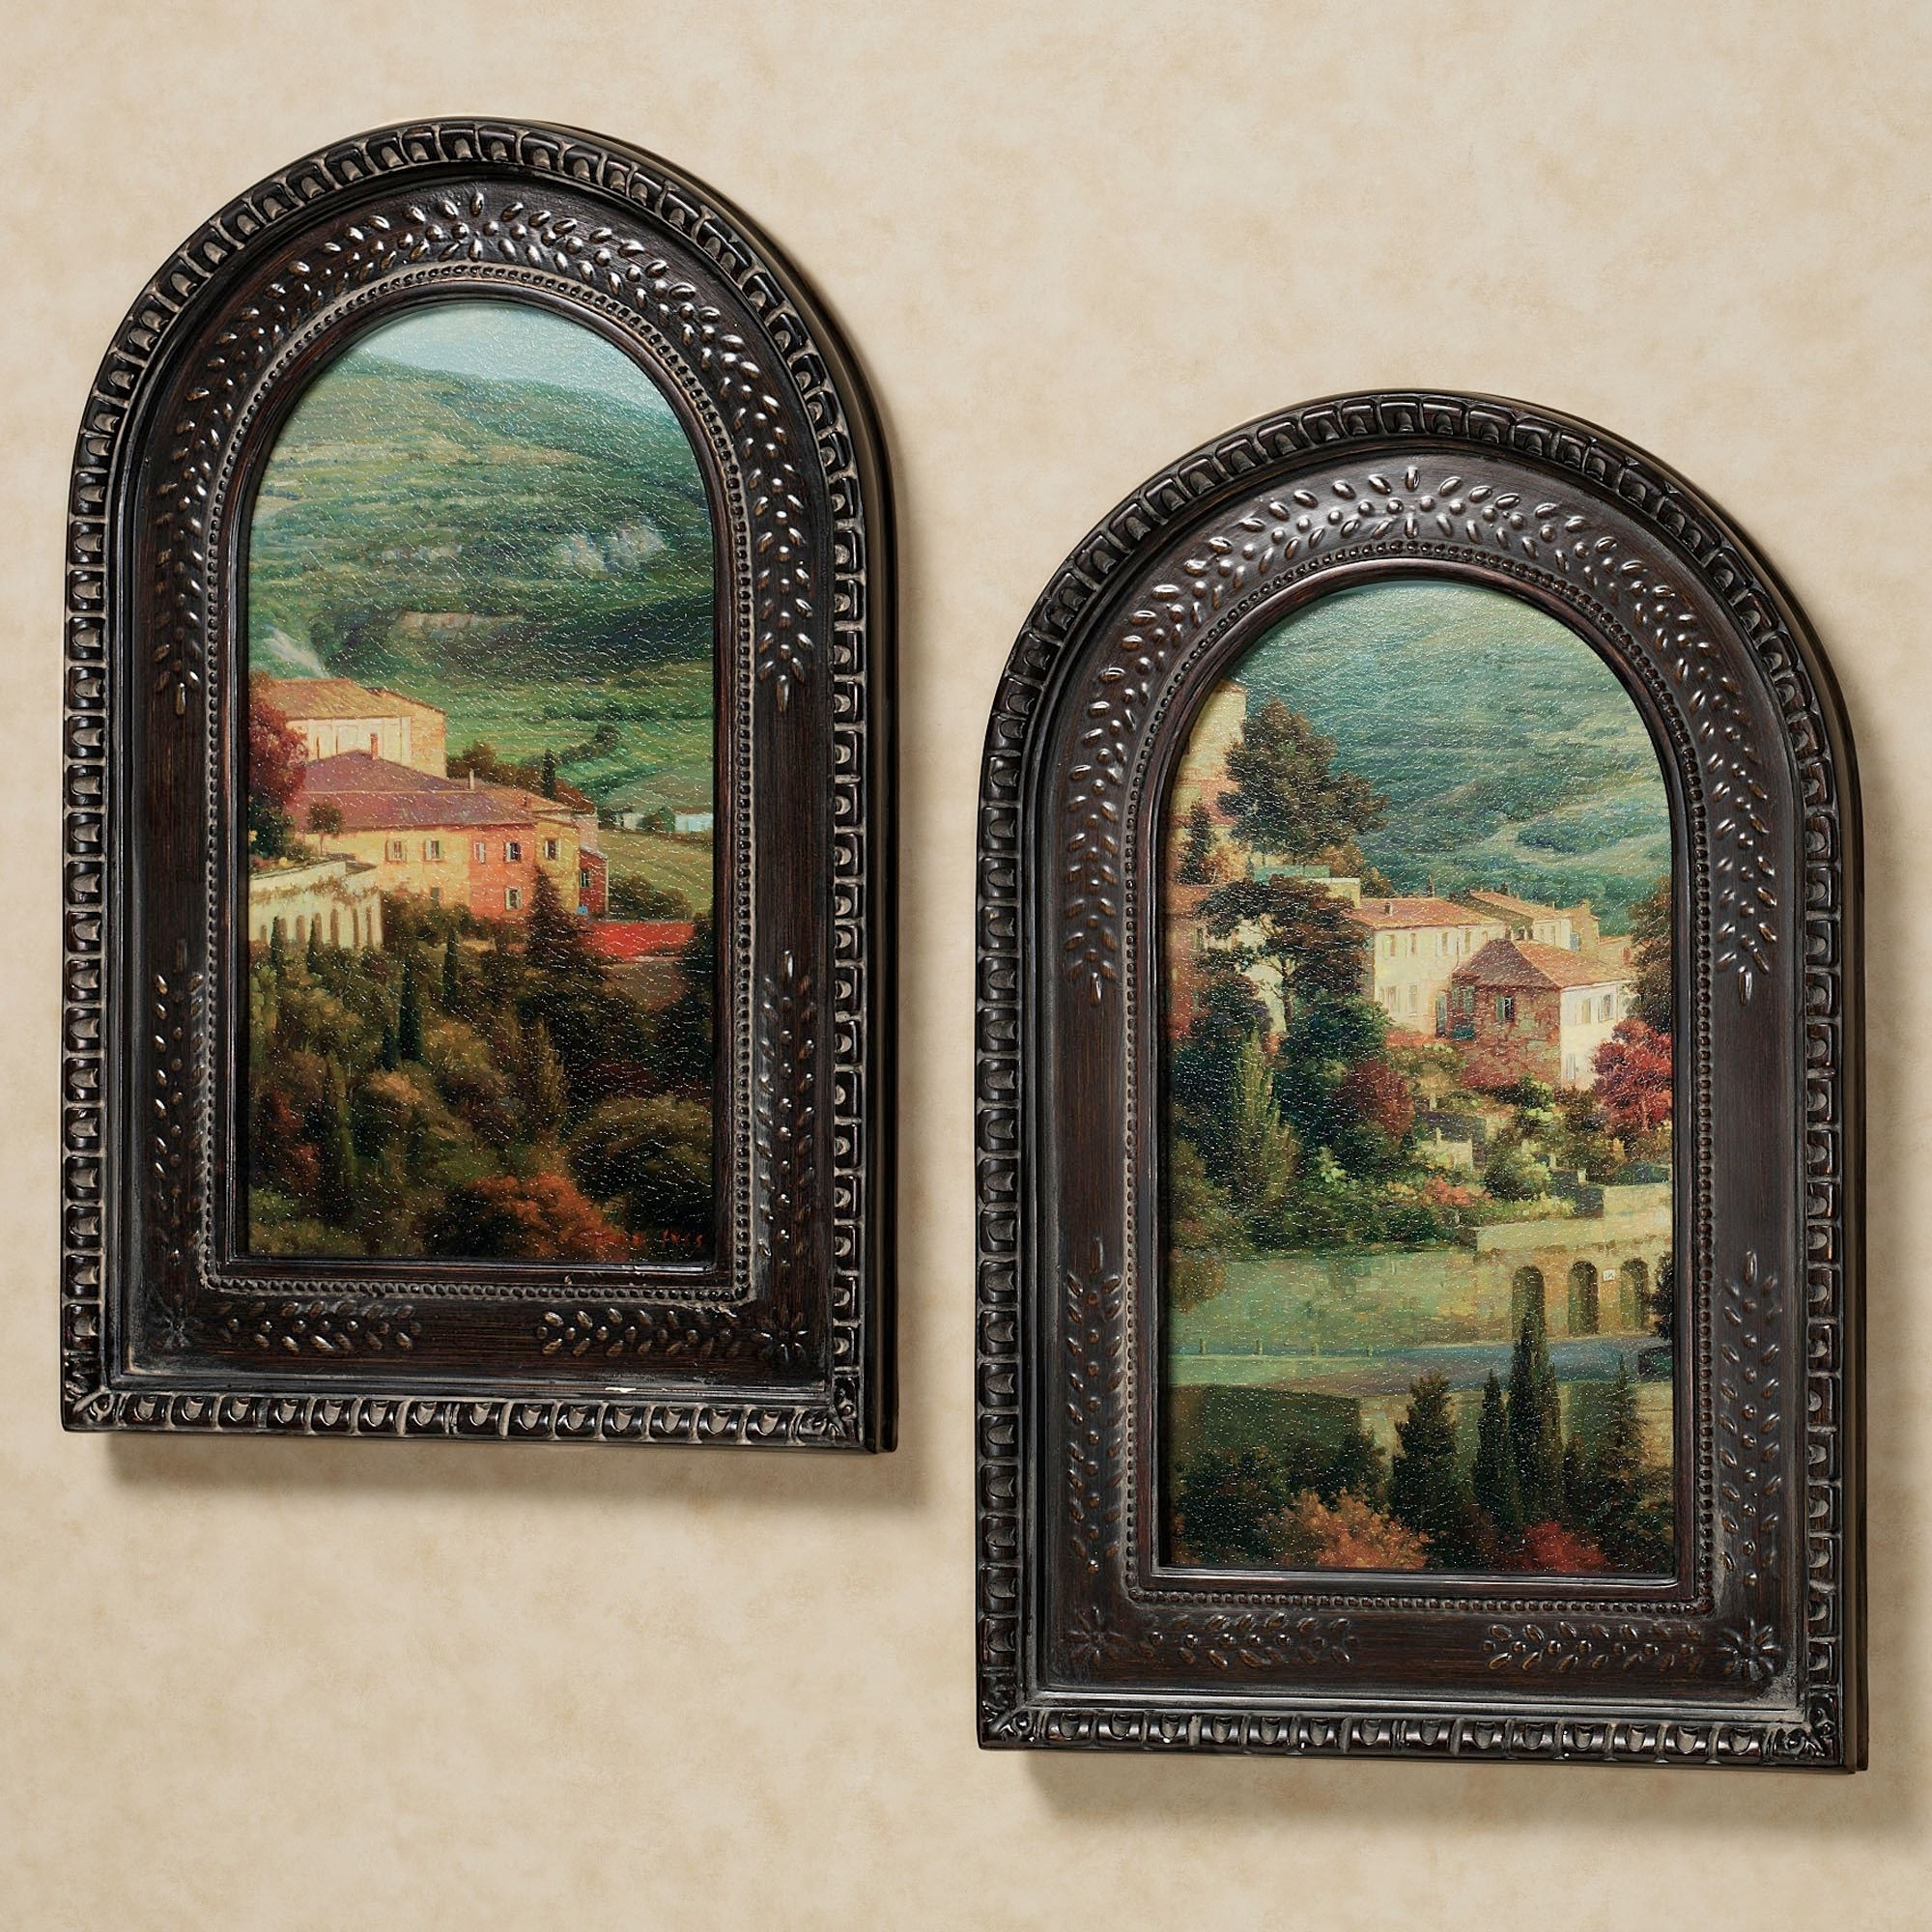 Italian Overlook Framed Wall Art Set Inside Best And Newest Framed Wall Art (View 4 of 15)